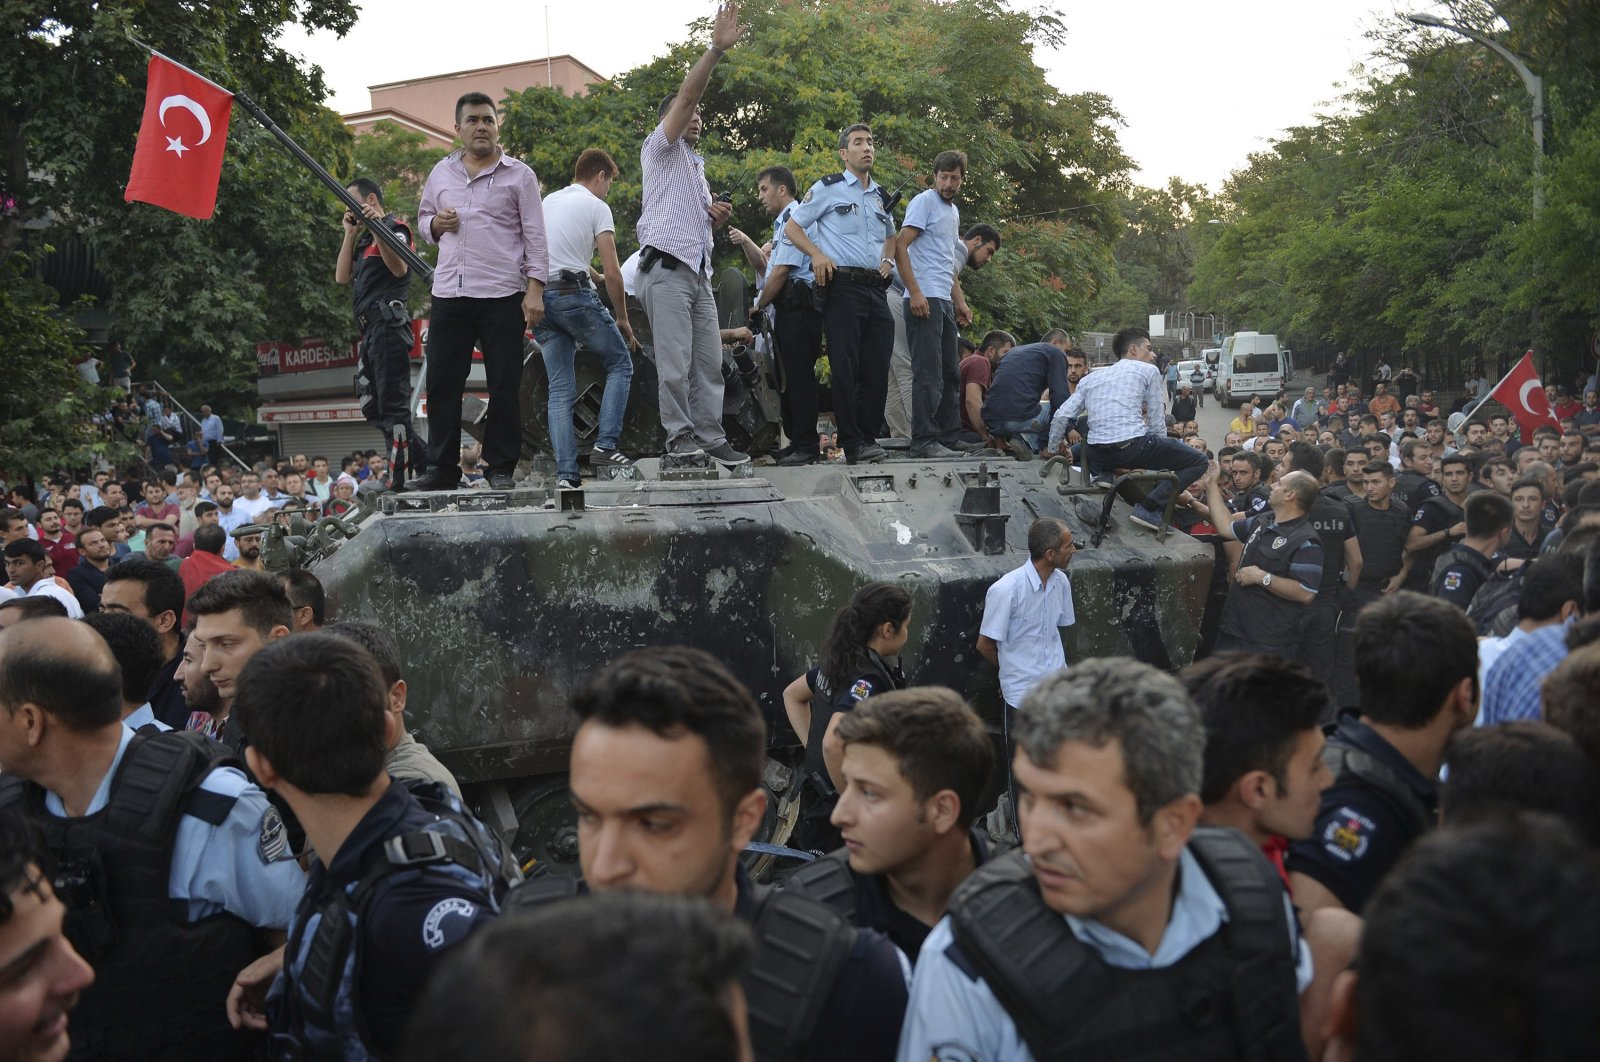 People gather and some stand atop a Turkish army armored vehicle during the attempted coup in Ankara, Turkey, July 16, 2016. (AP Photo)